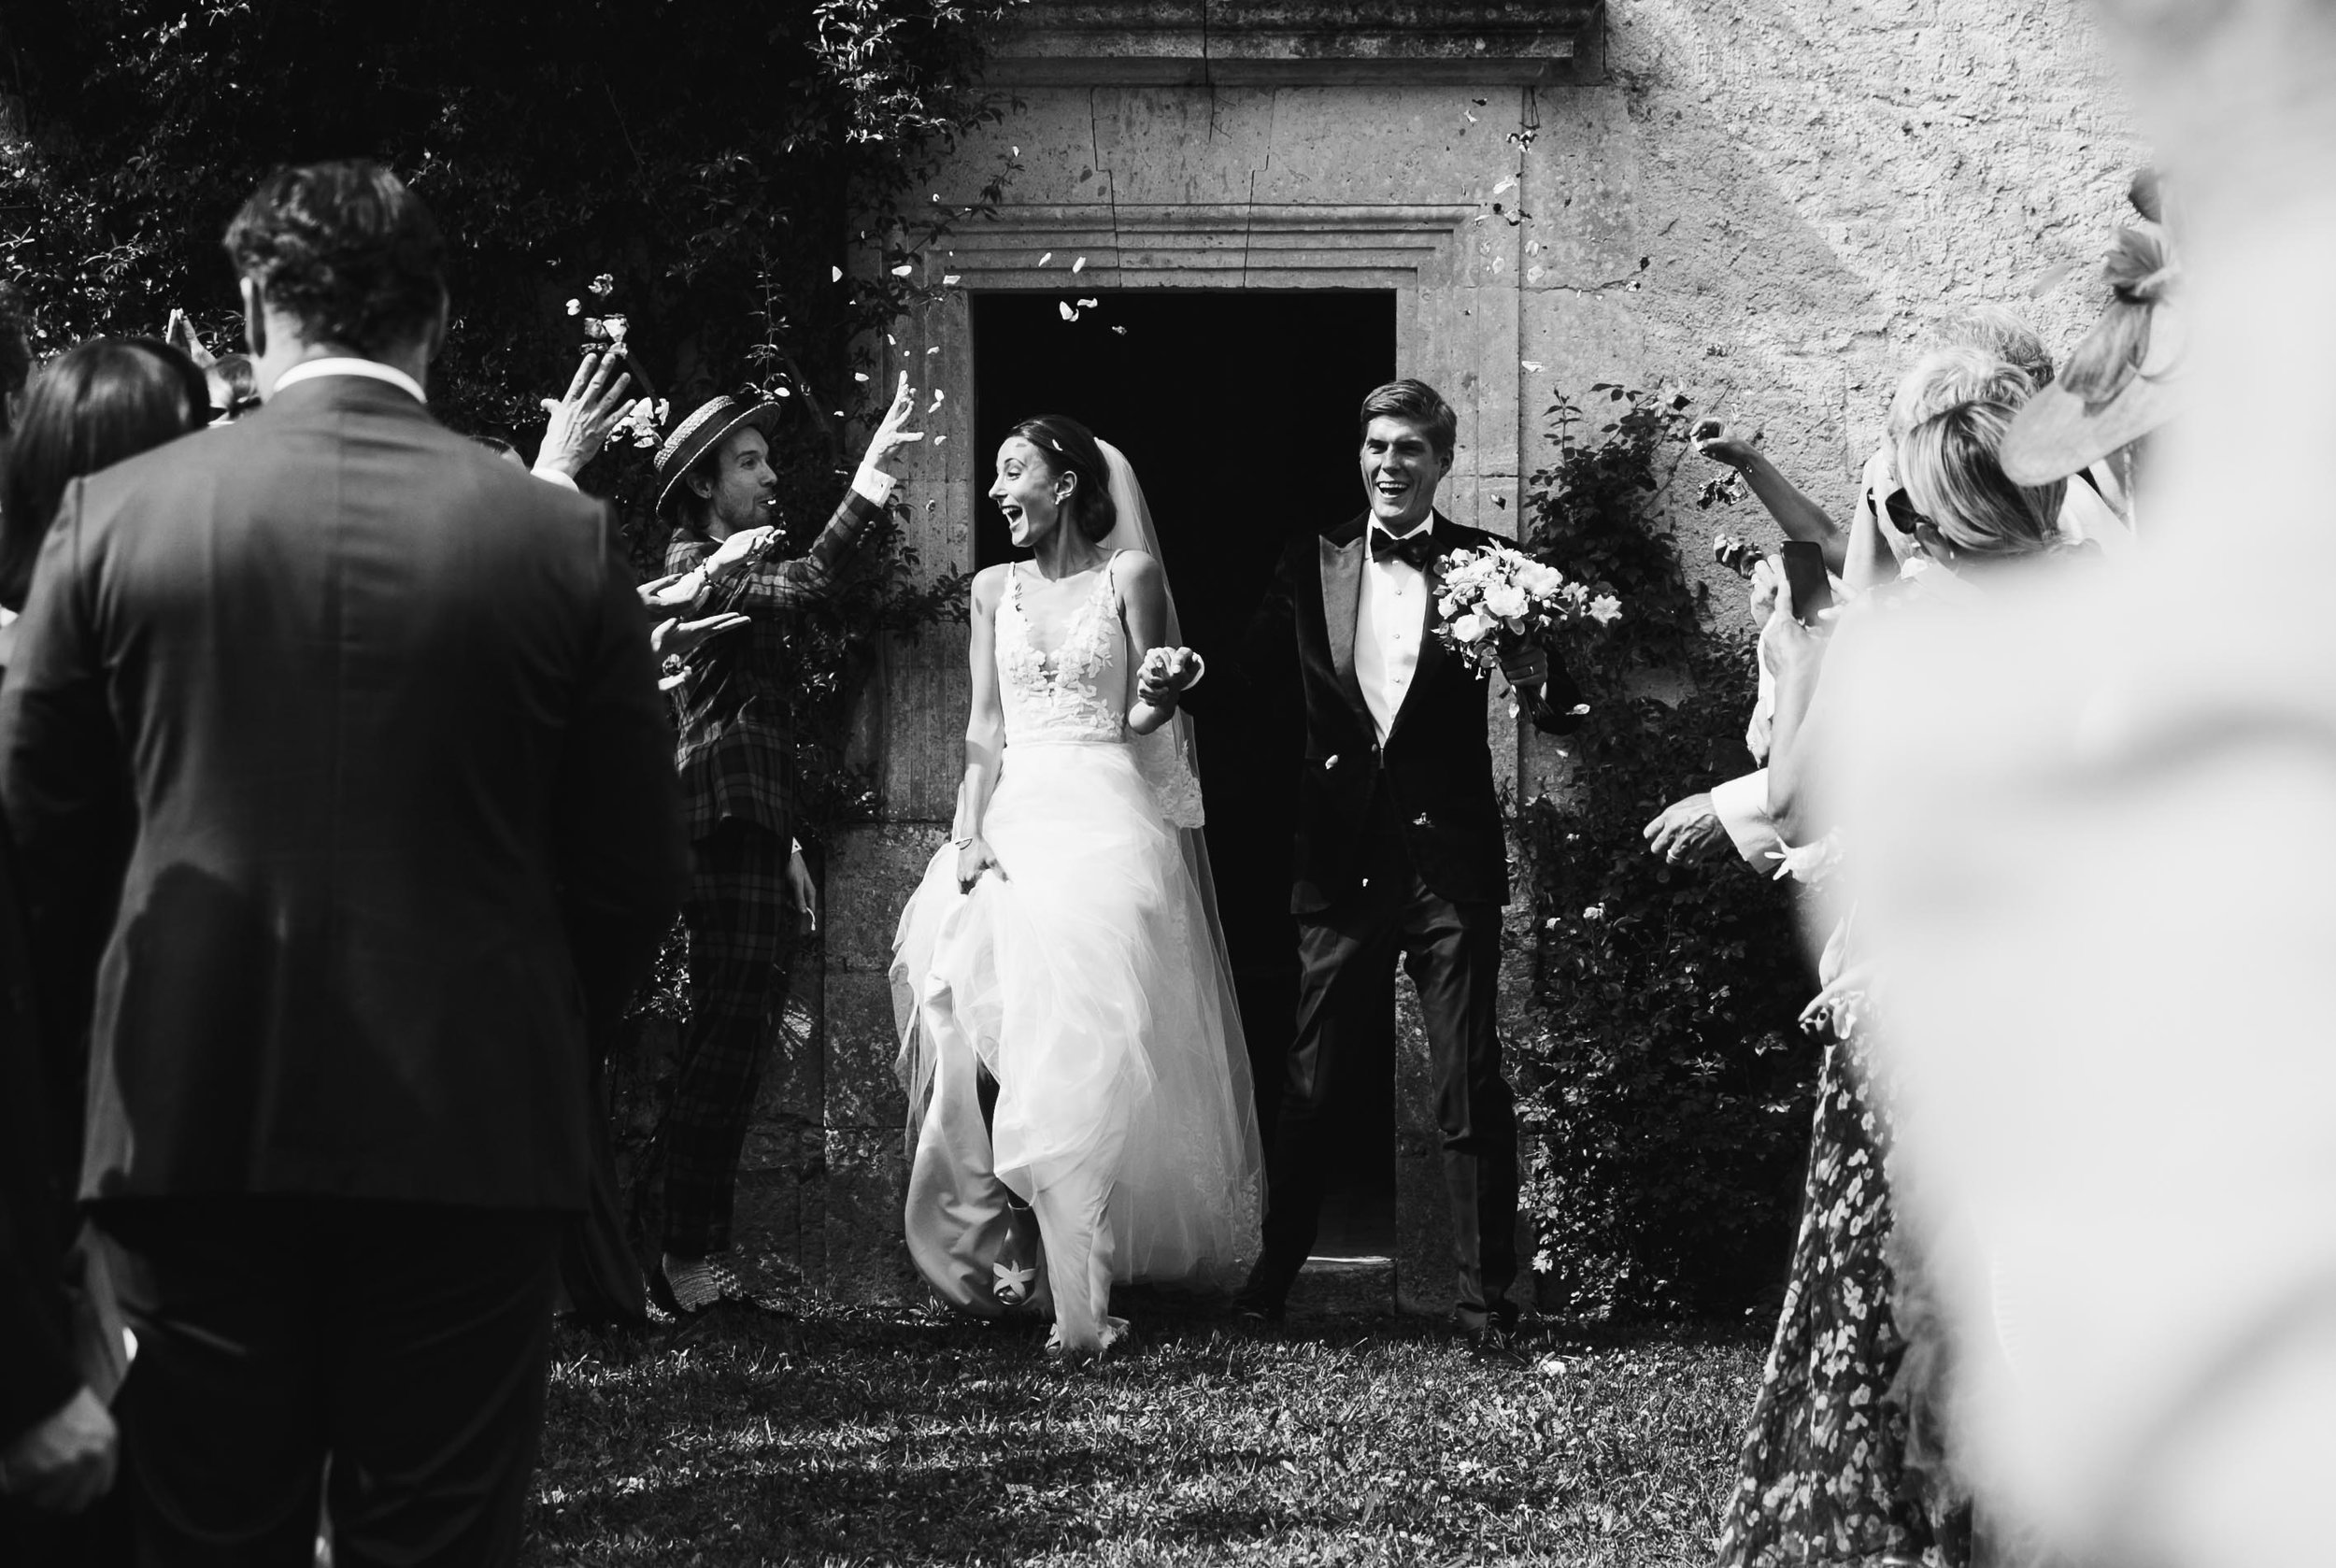 Steph Max South of France Wedding lr-298.jpg